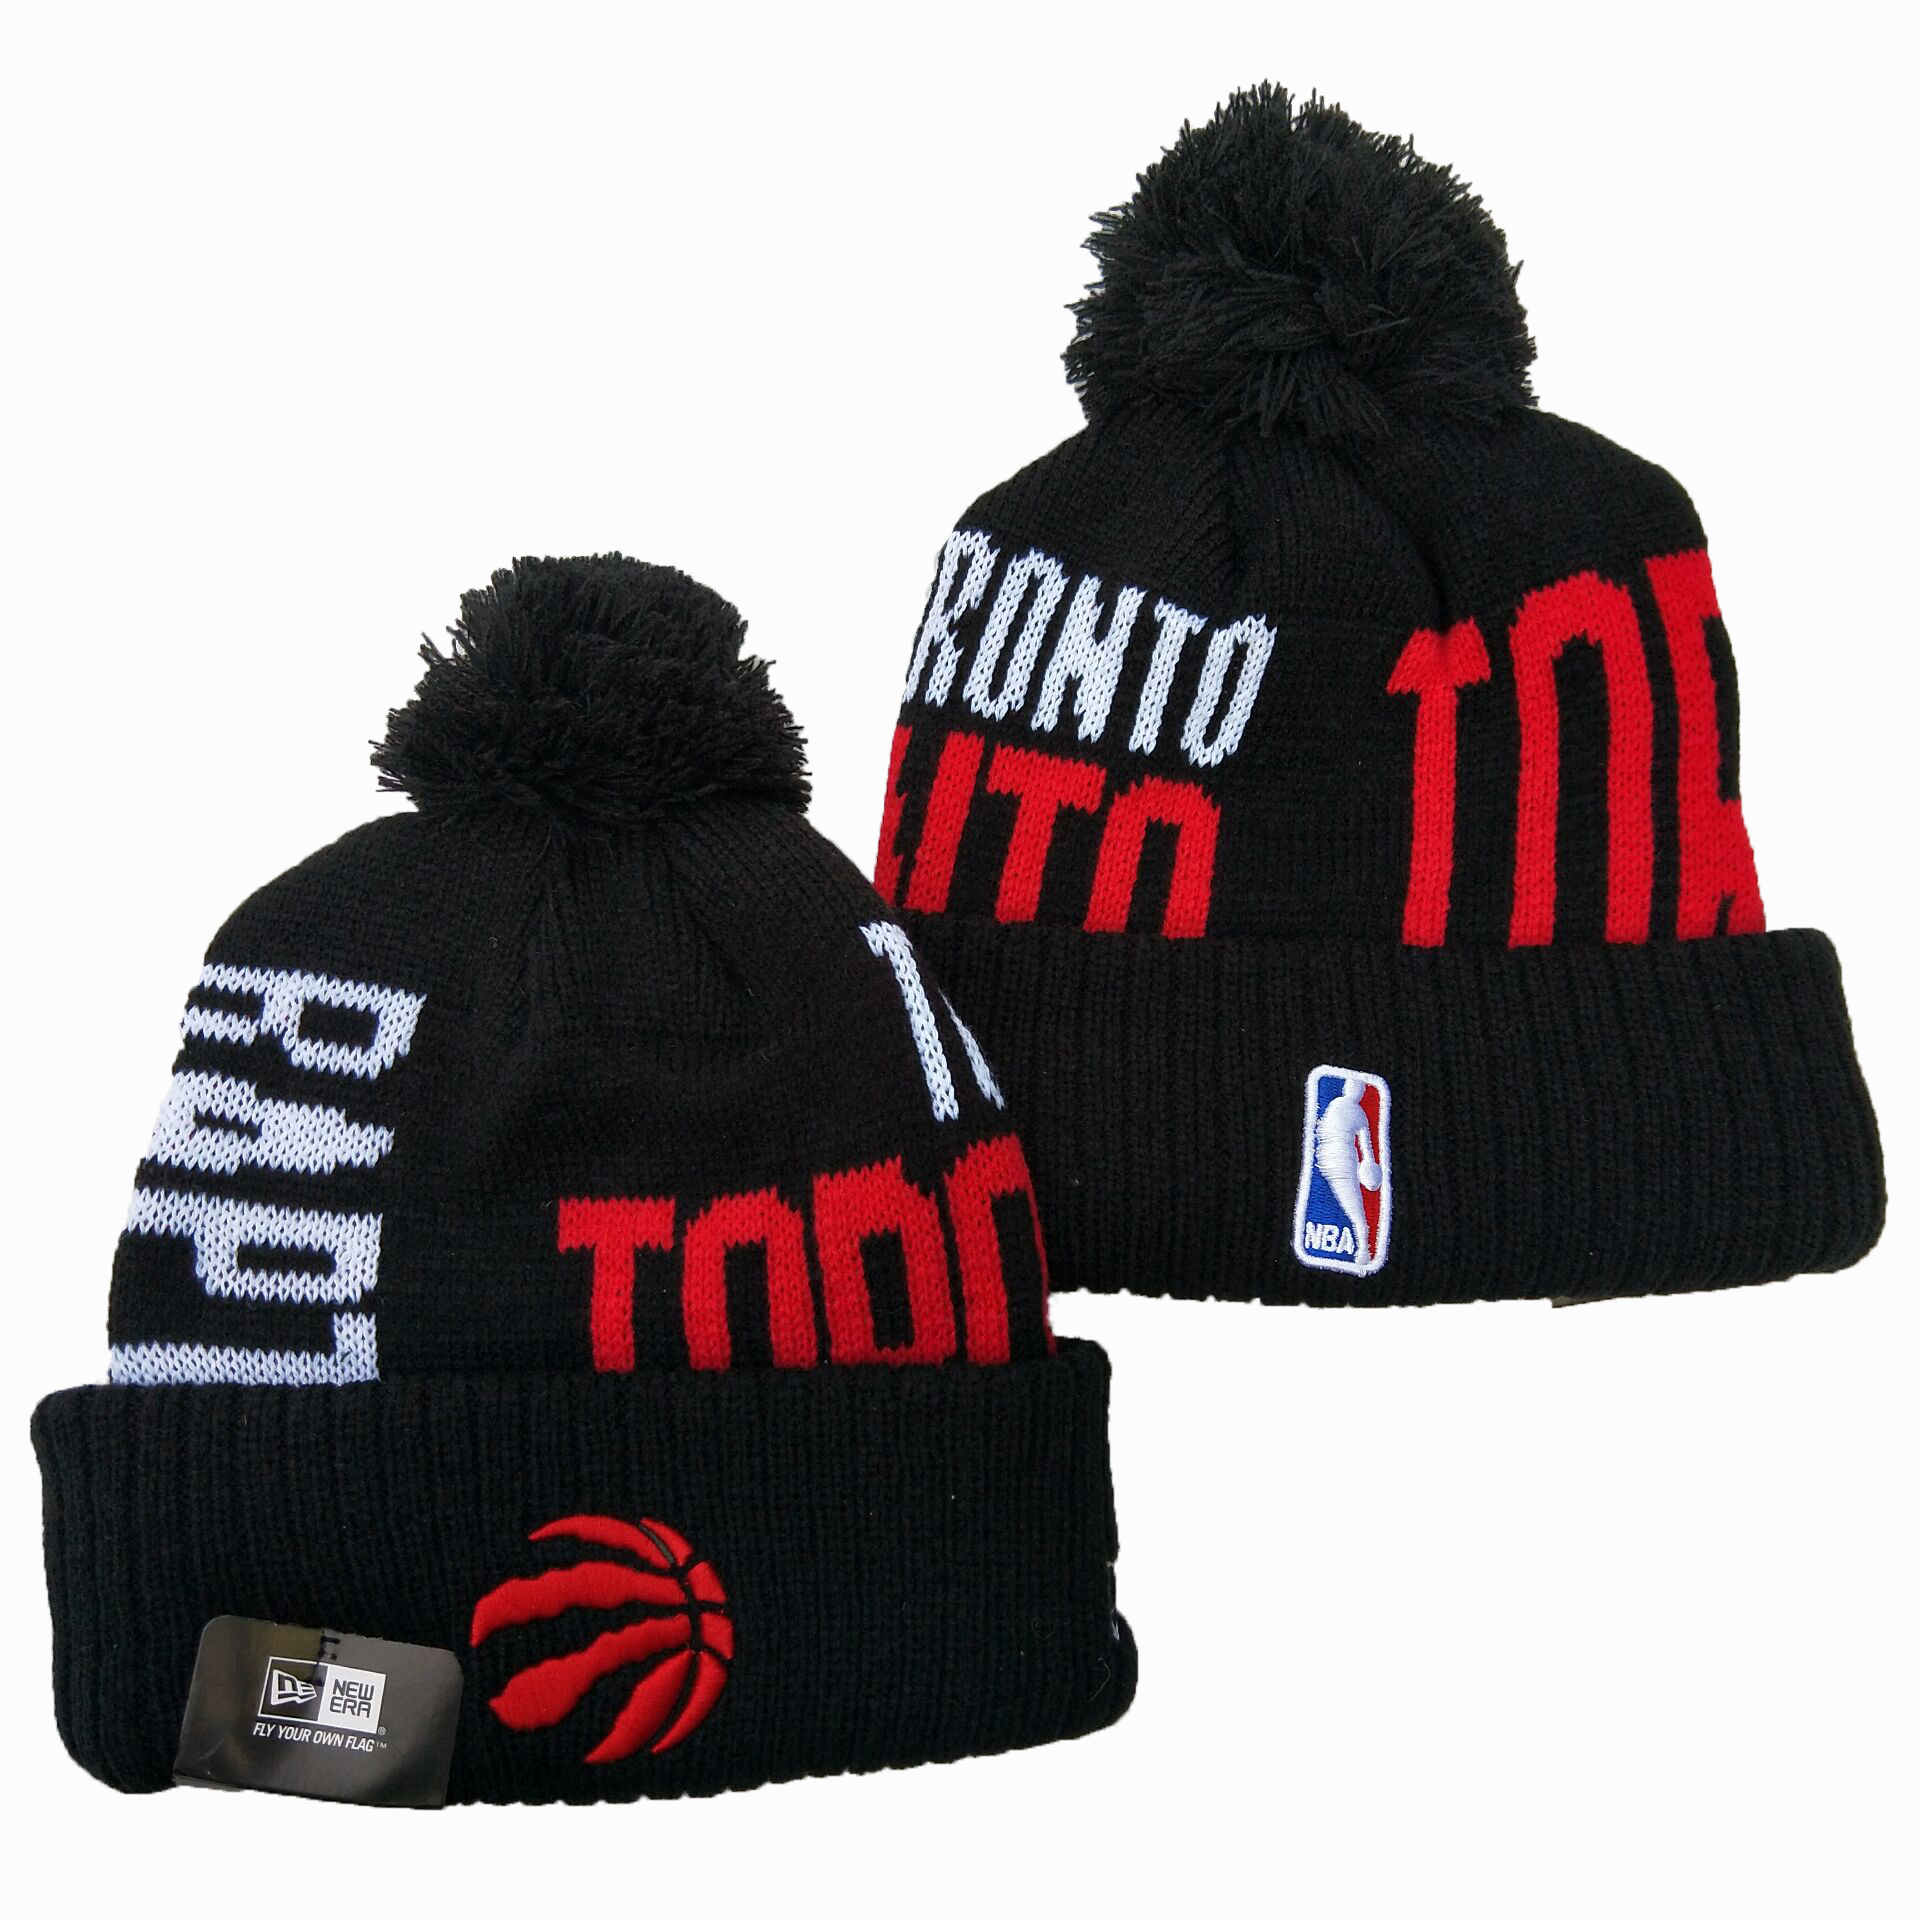 Raptors Team Logo Black Wordmark Cuffed Pom Knit Hat YD